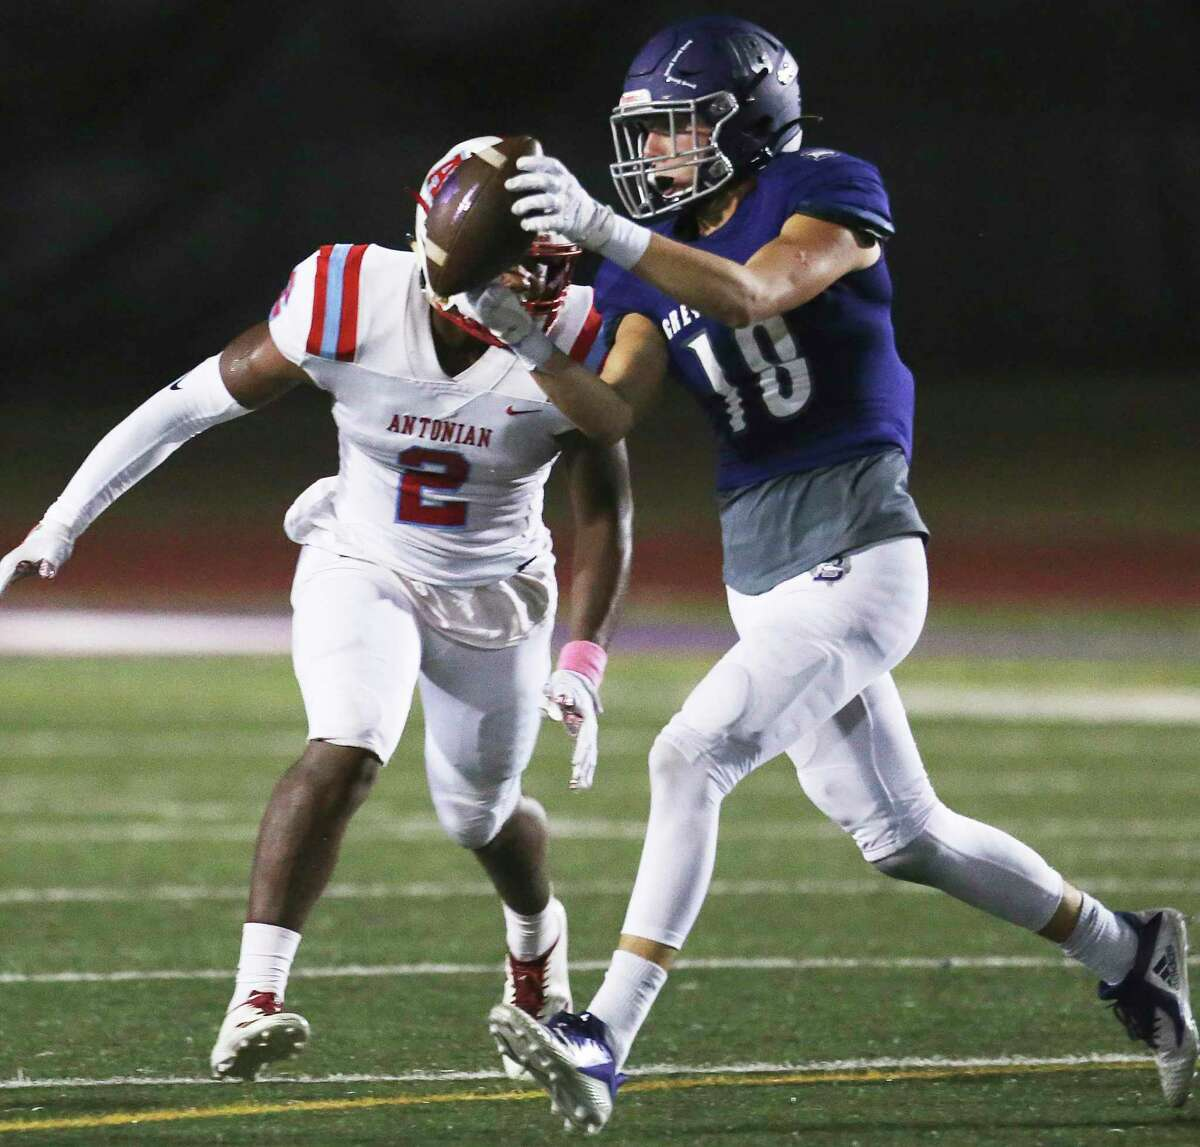 Greyhound receiver Koby Hunter snares a pass in front of Bryon Armstrong as Boerne hosts Antonian at Greyhound Stadium on Oct. 4, 2019.